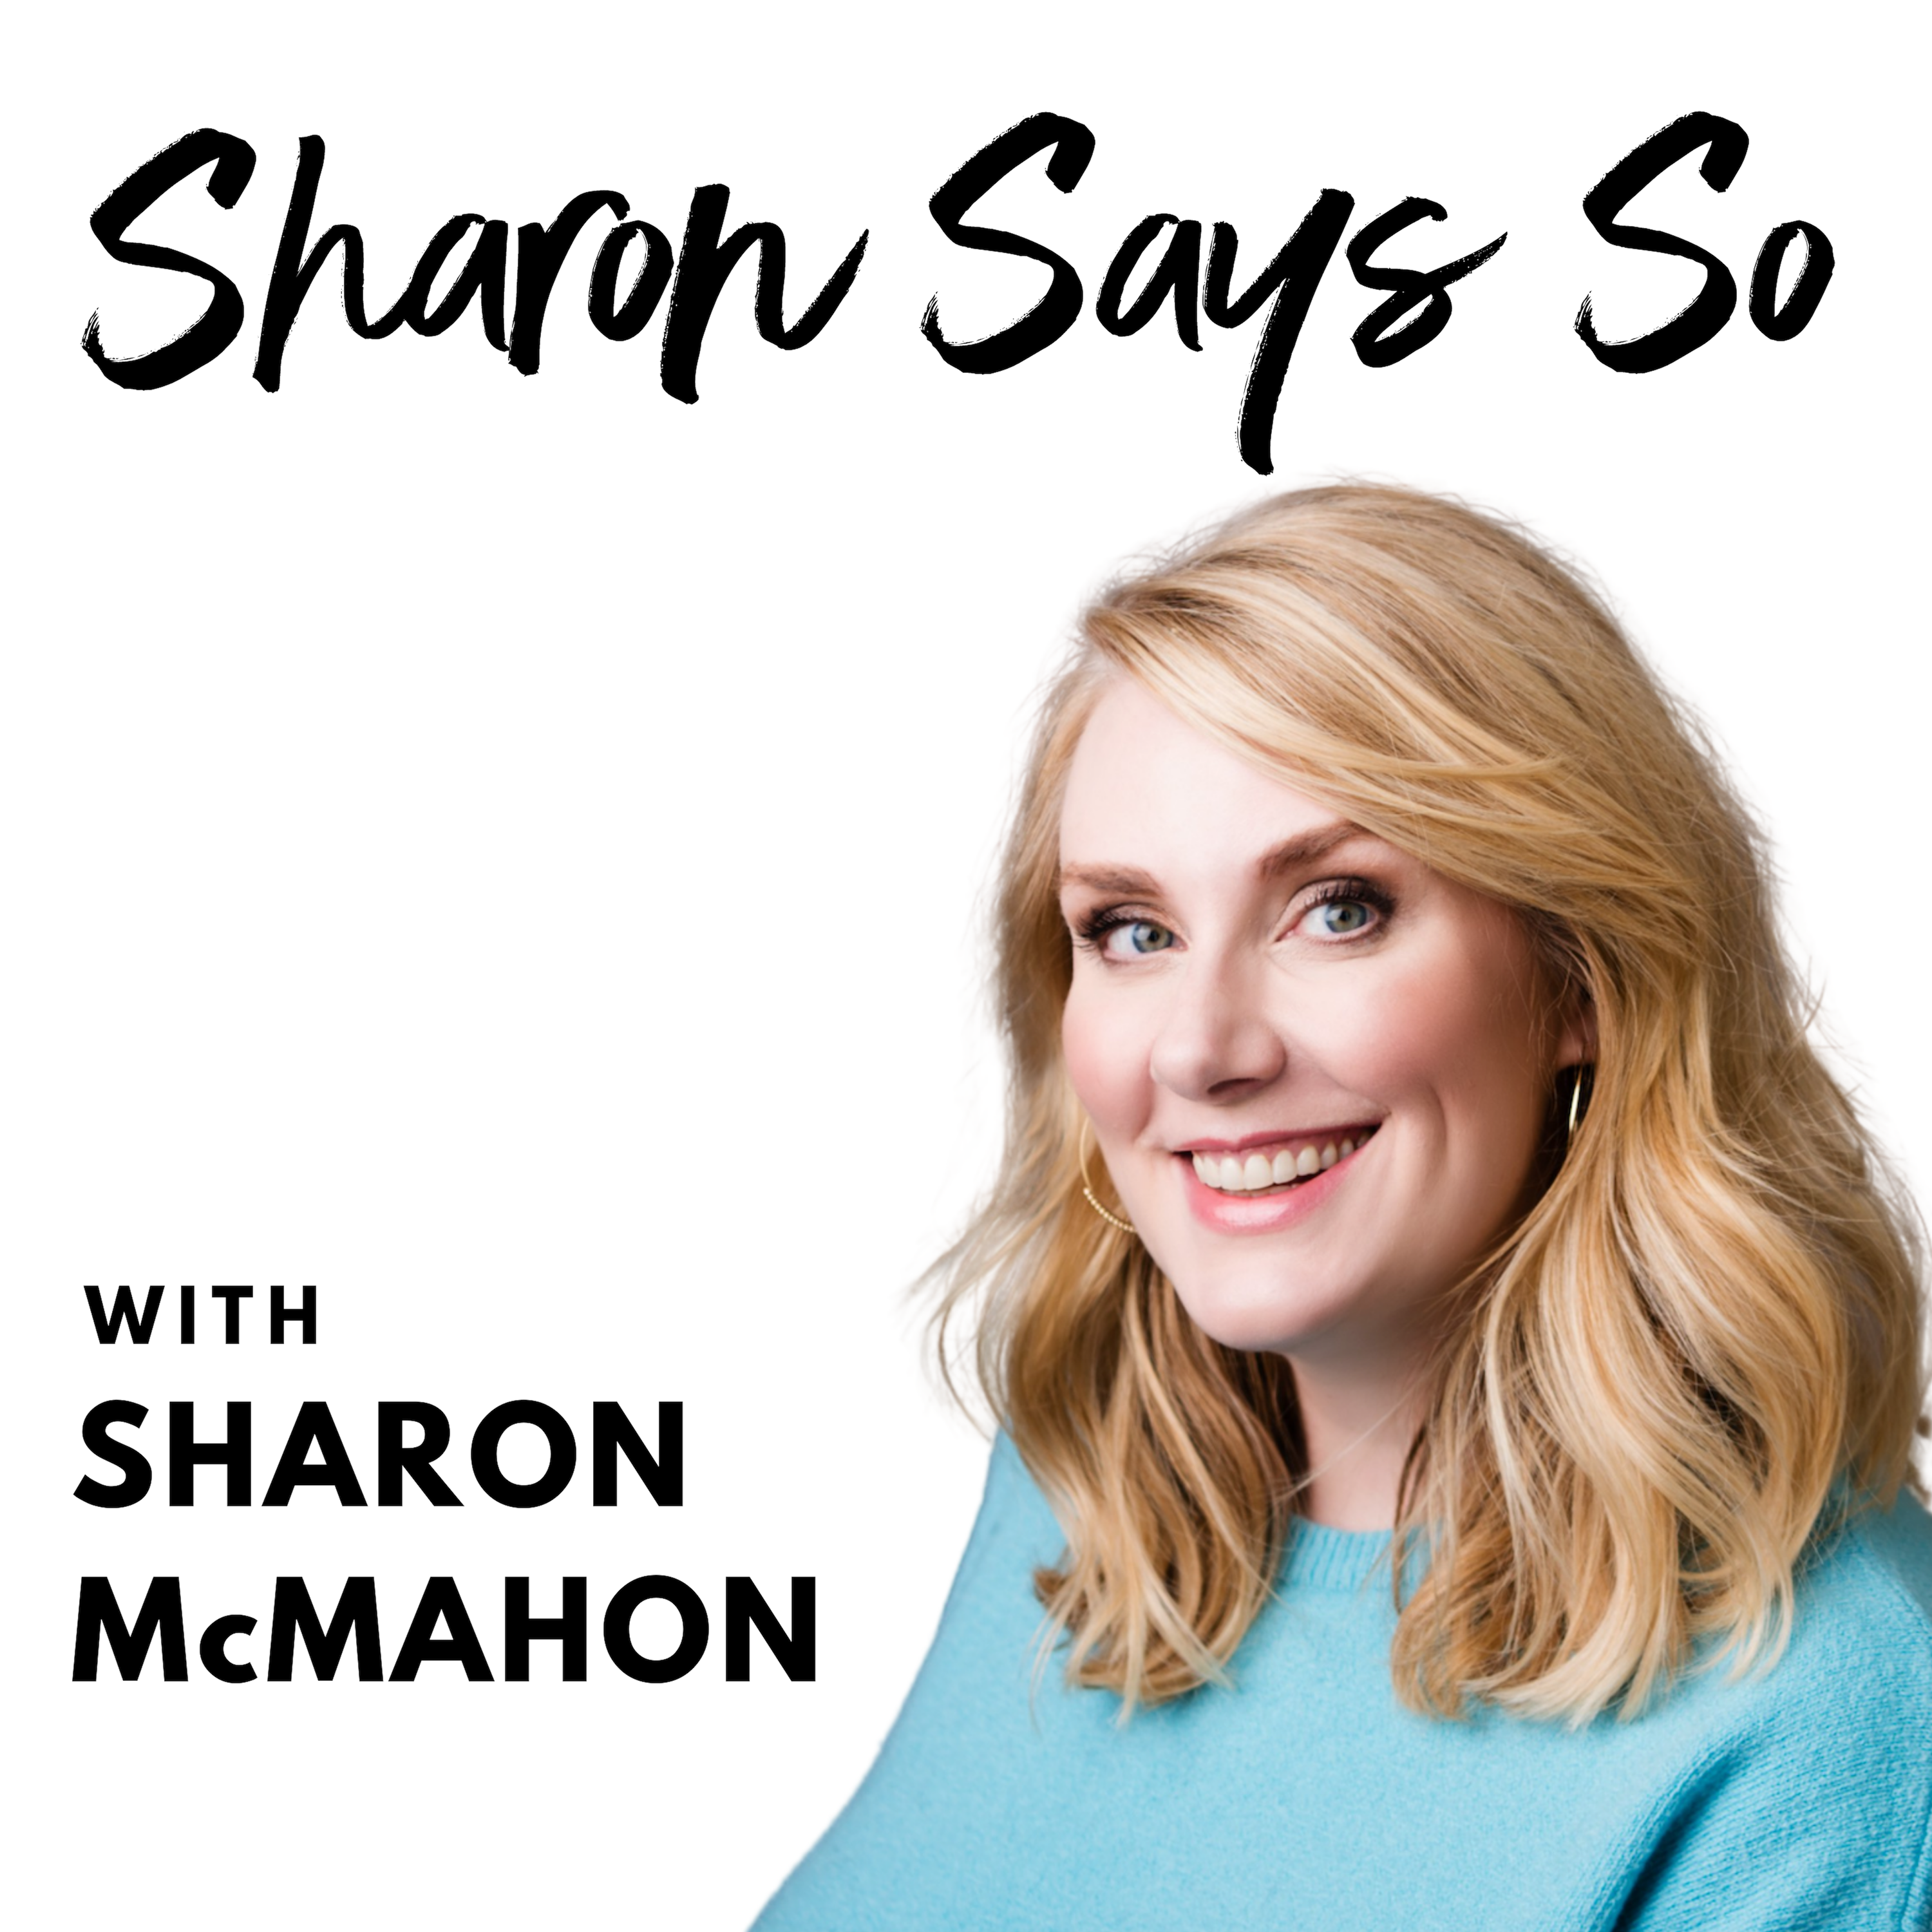 Introducing the Sharon Says So Podcast with Sharon McMahon